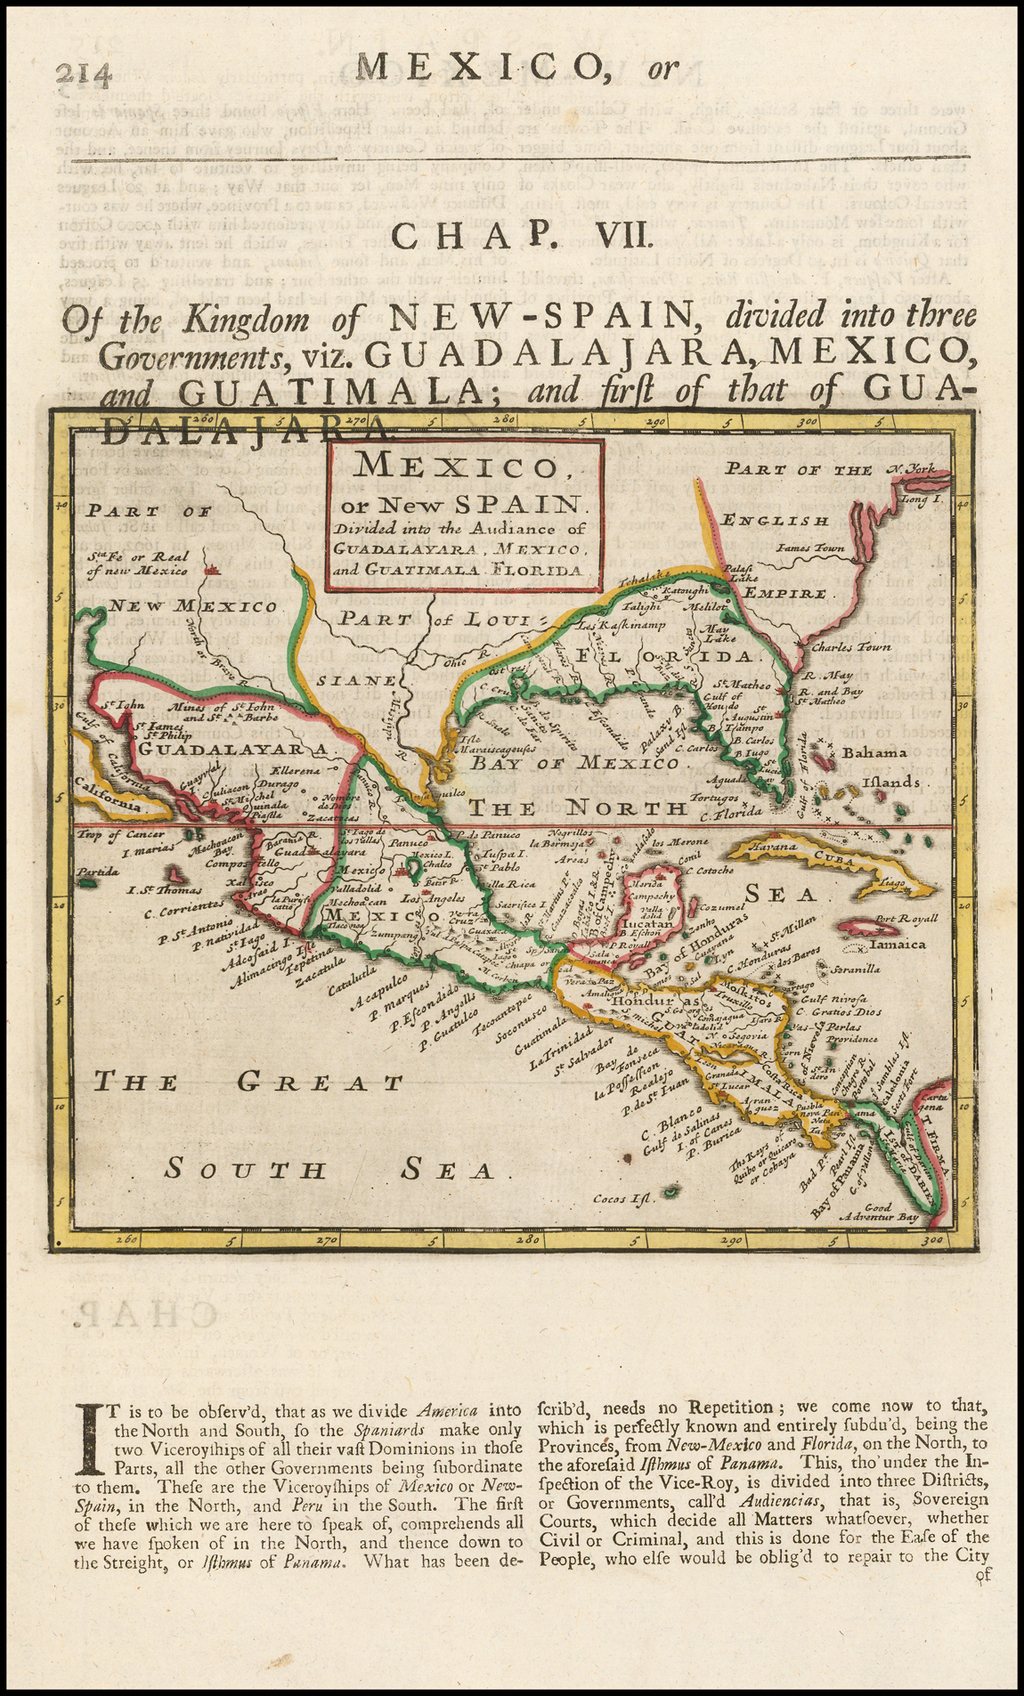 Mexico or New Spain.  Divided into the Audiance of Guadalayara, Mexico, and Guatimala, Florida By Herman Moll